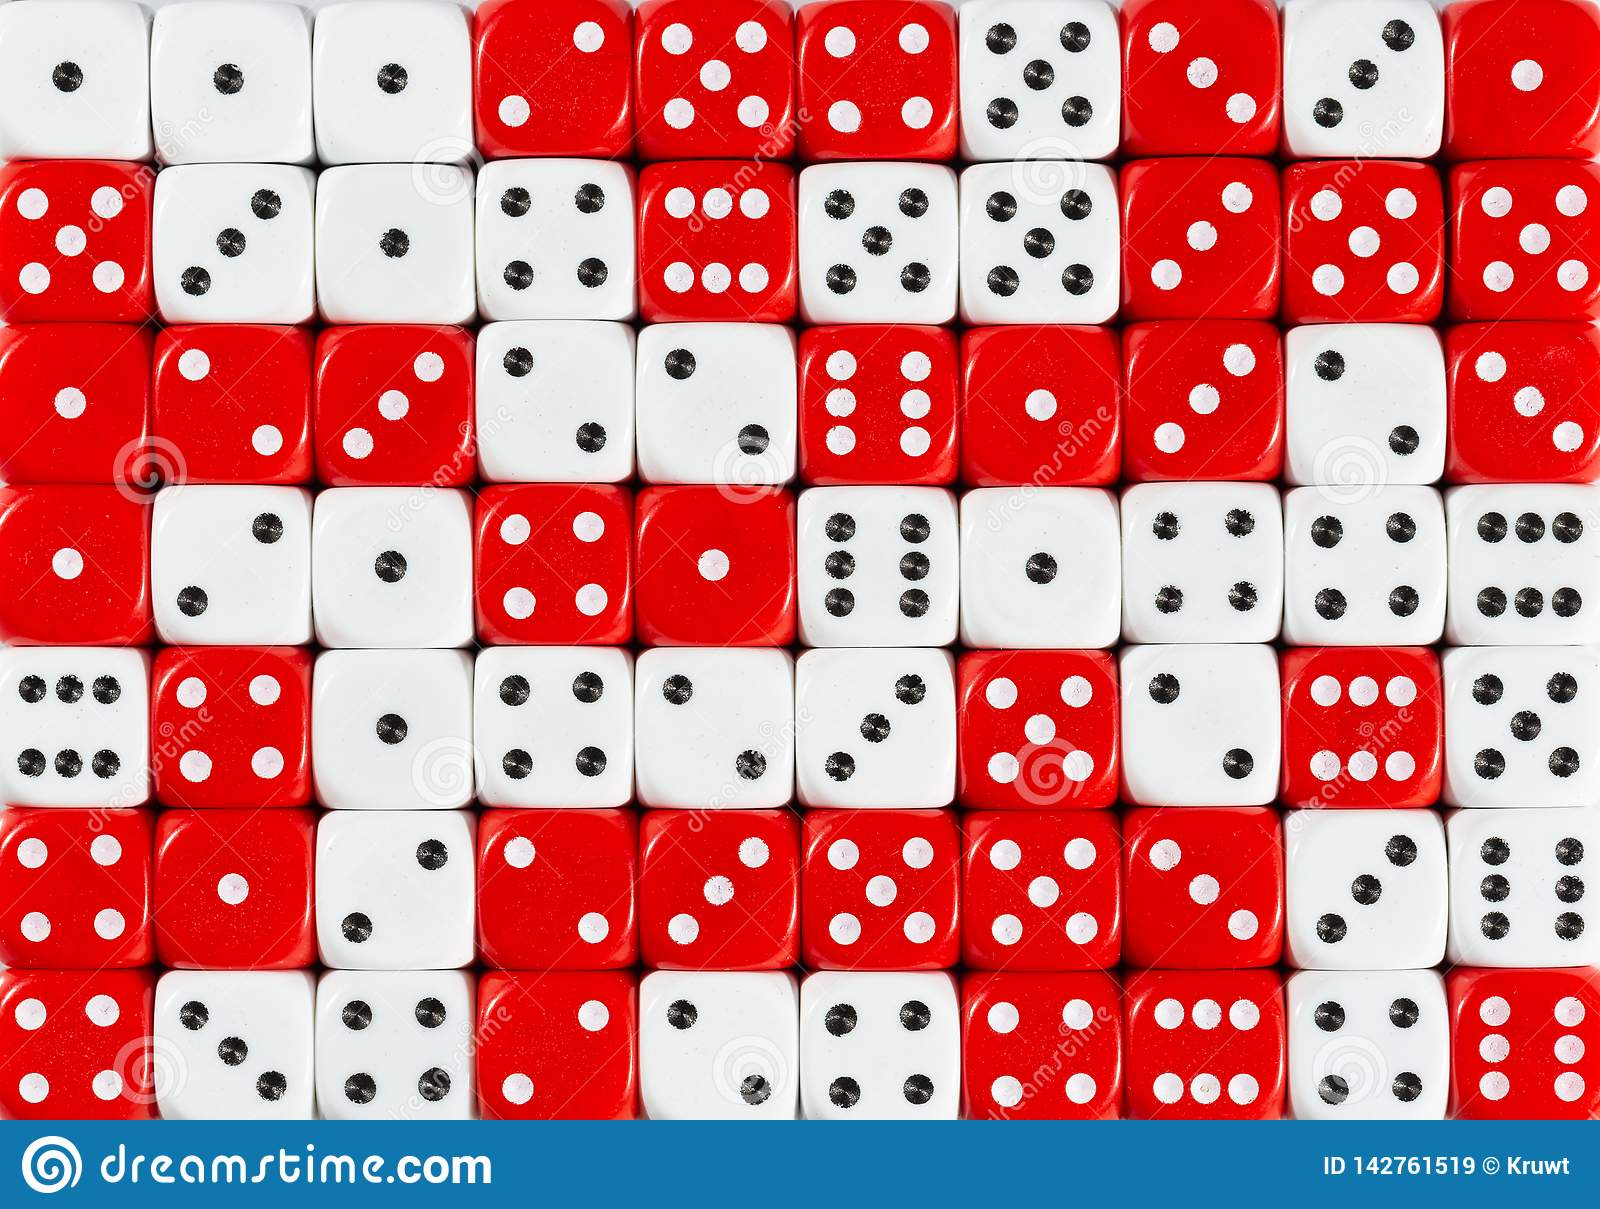 Background of 70 random ordered white and red dices